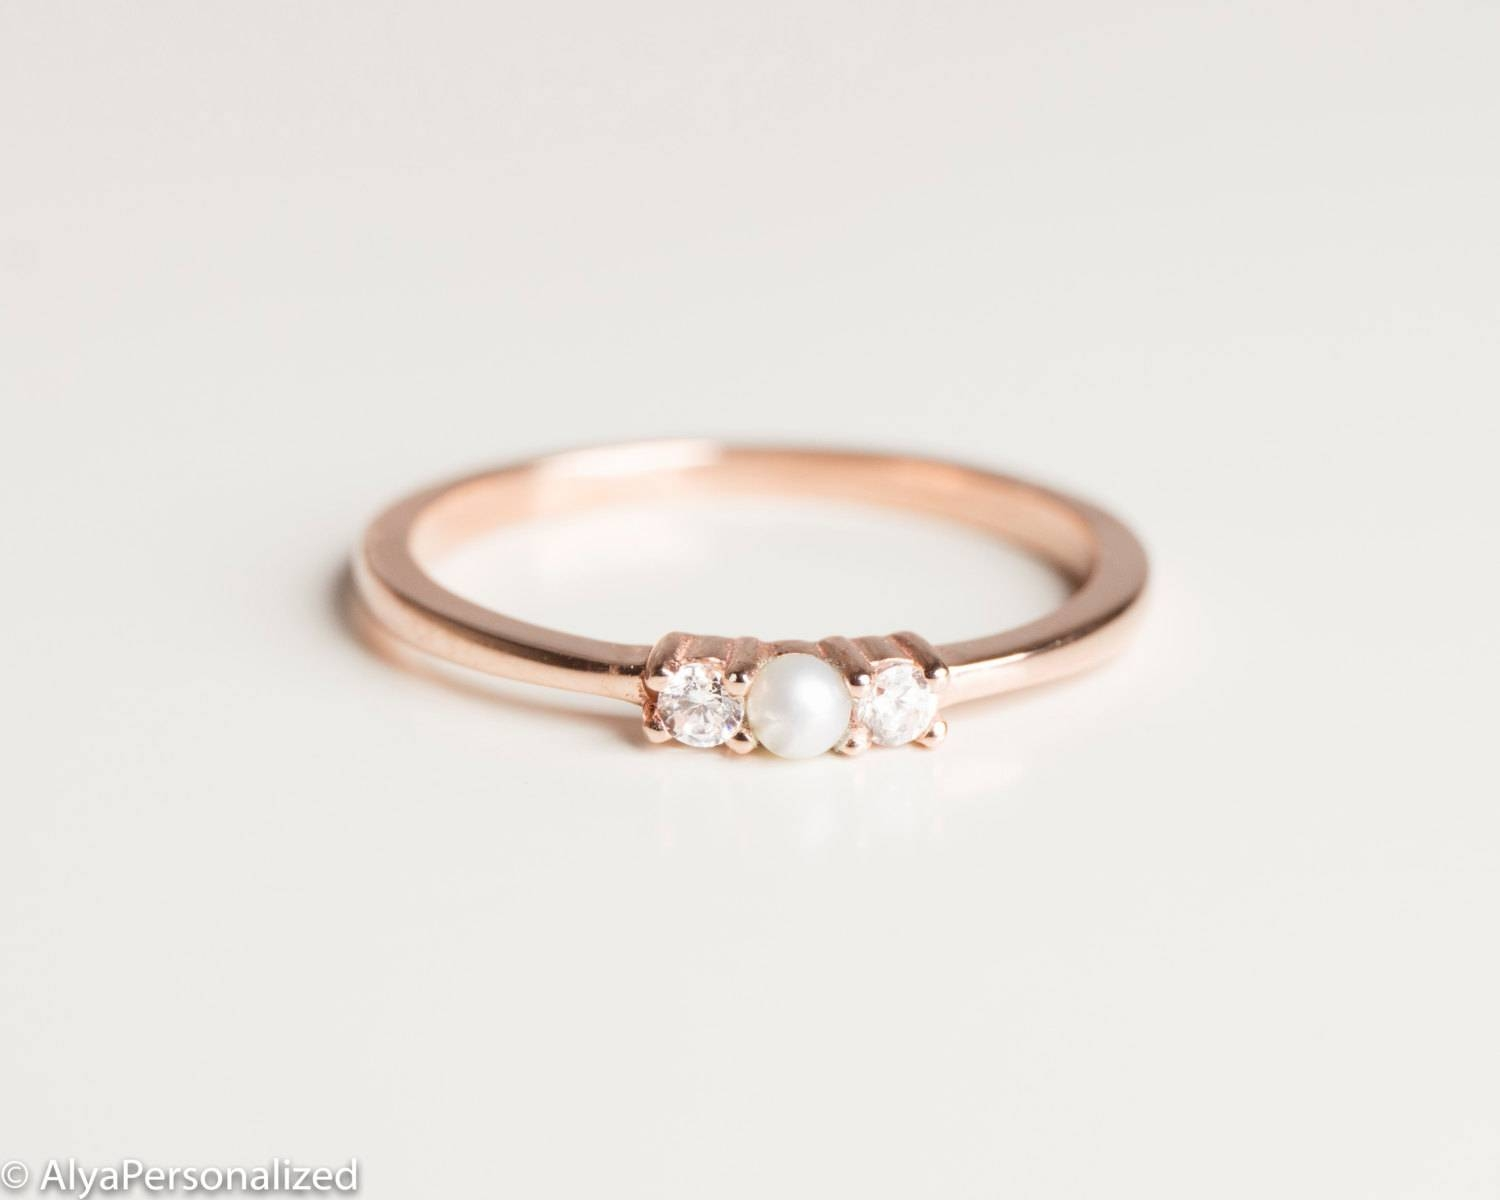 Anniversary Ring Simple Ring Band Thin Rose Gold Ring With Current 14K Gold Anniversary Rings (Gallery 5 of 15)